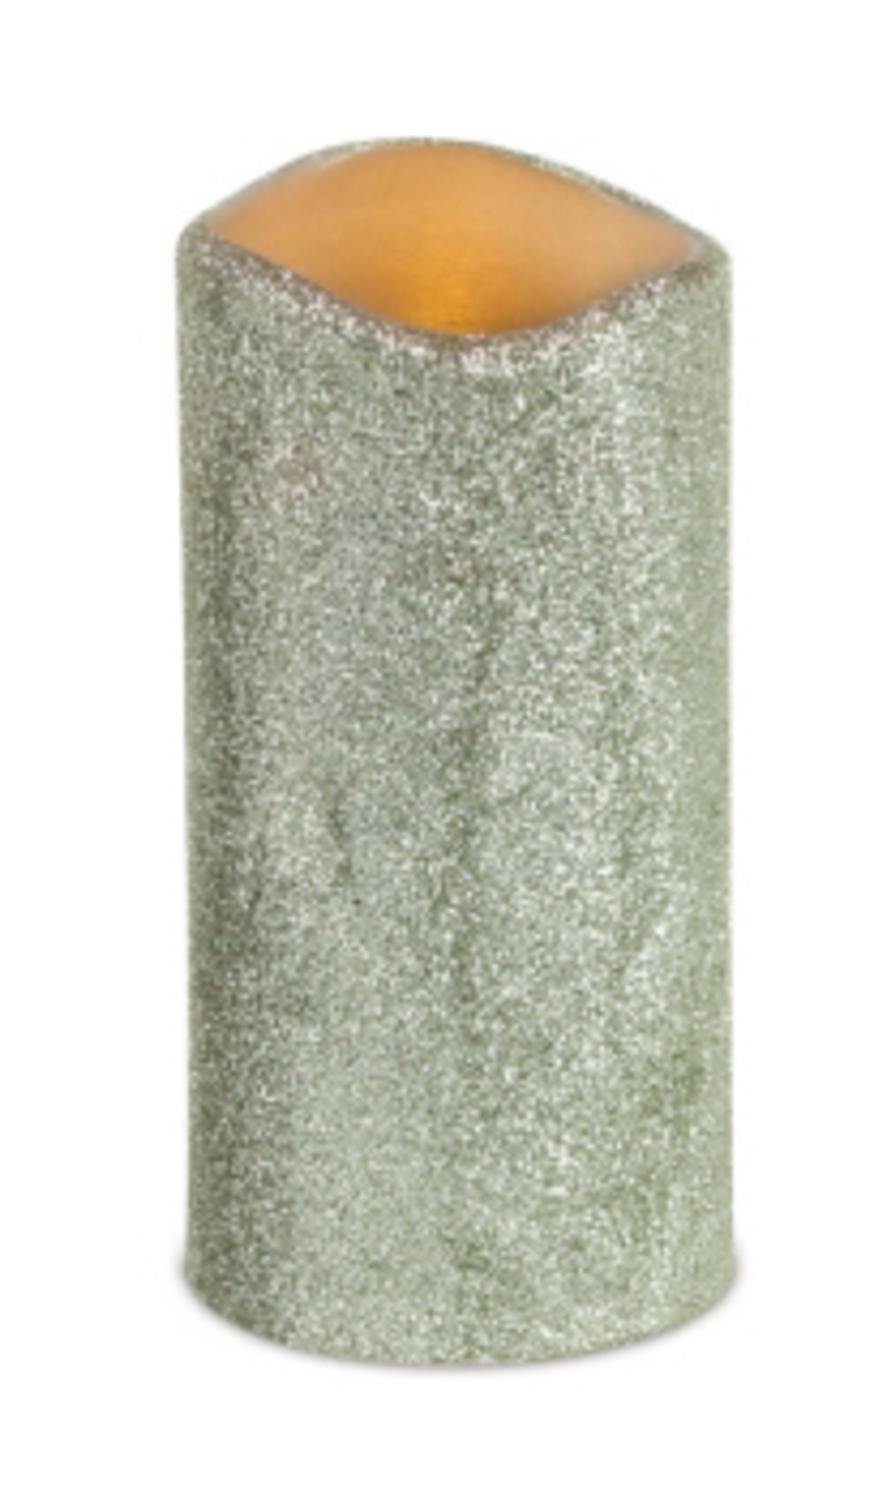 6 Silver Glittered Battery Operated LED Flameless Wax Pillar Candles 3'' x 6'' by CC Christmas Decor